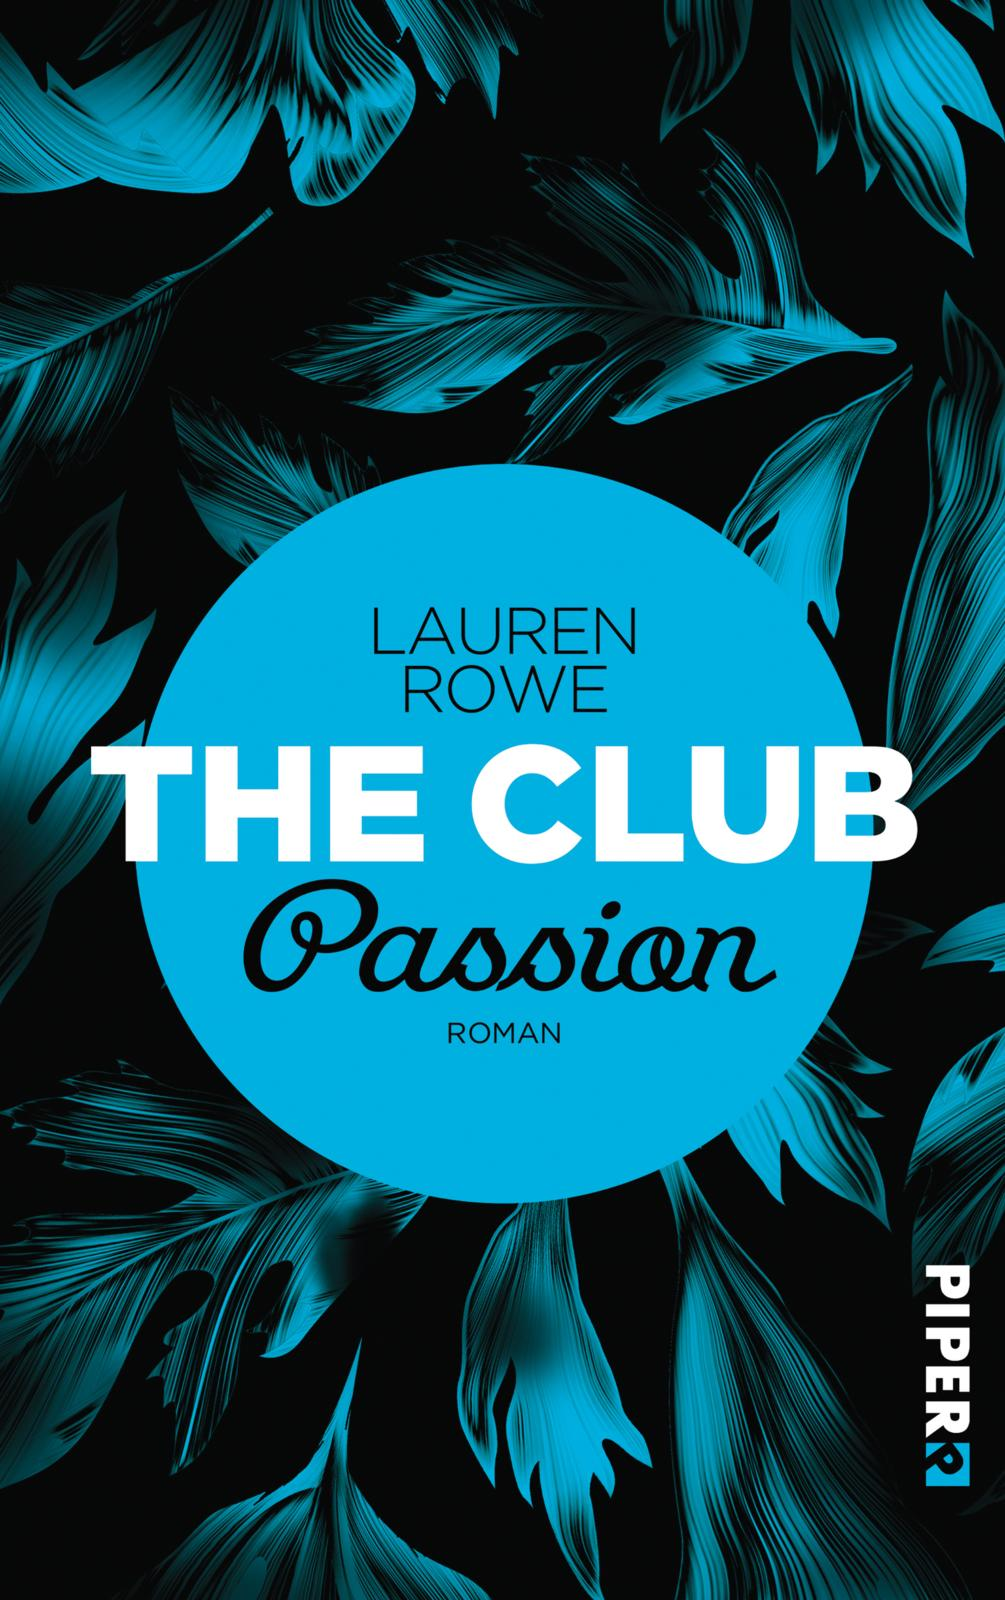 Lauren Rowe The Club Passion Buchcover Piper